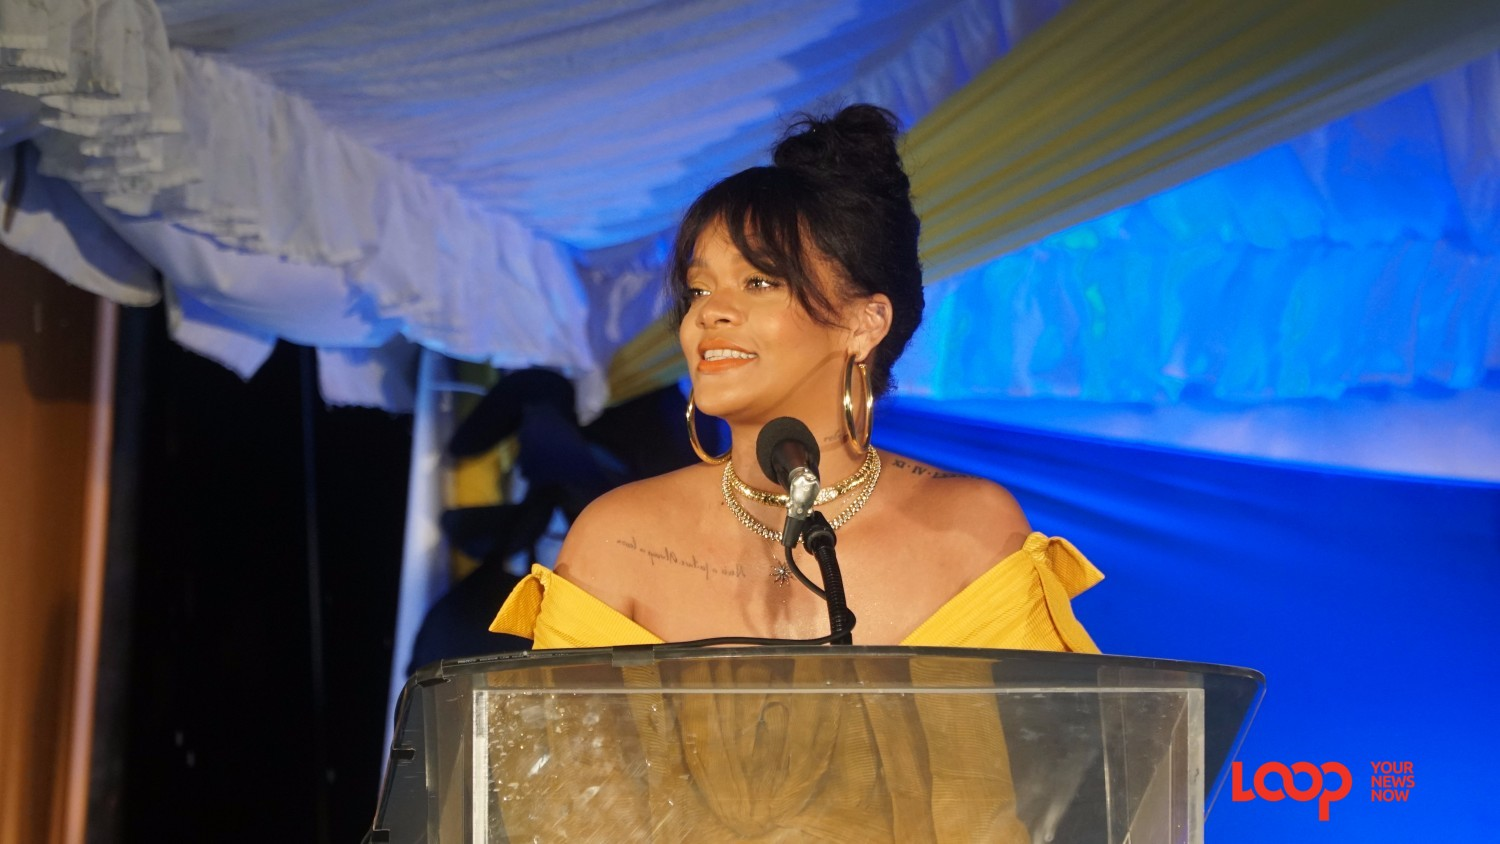 Rihanna appointed as Official Ambassador of Barbados!